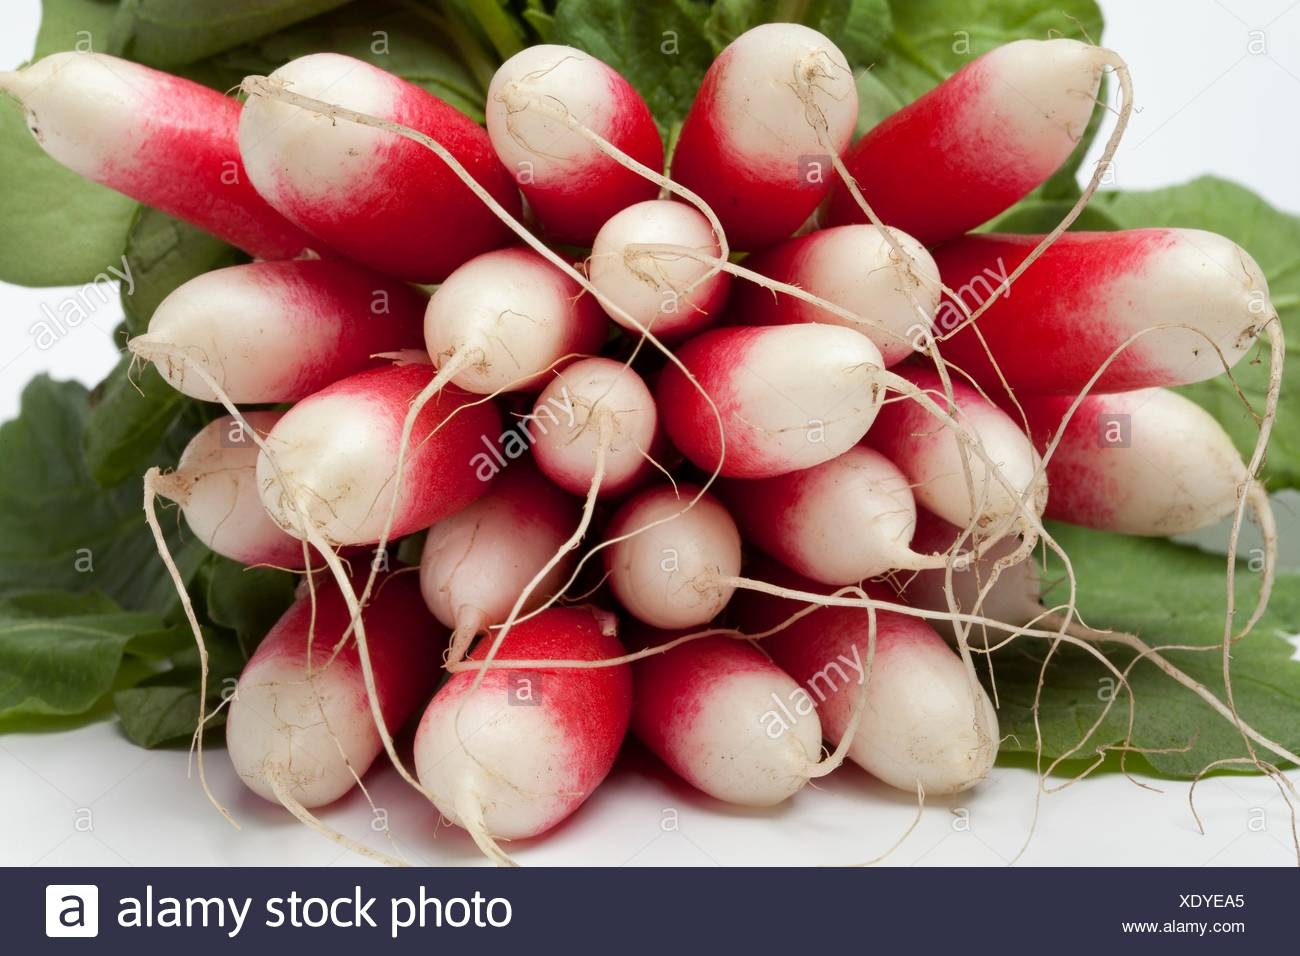 Oval red and white Radish on white backgrpound. - Stock Image